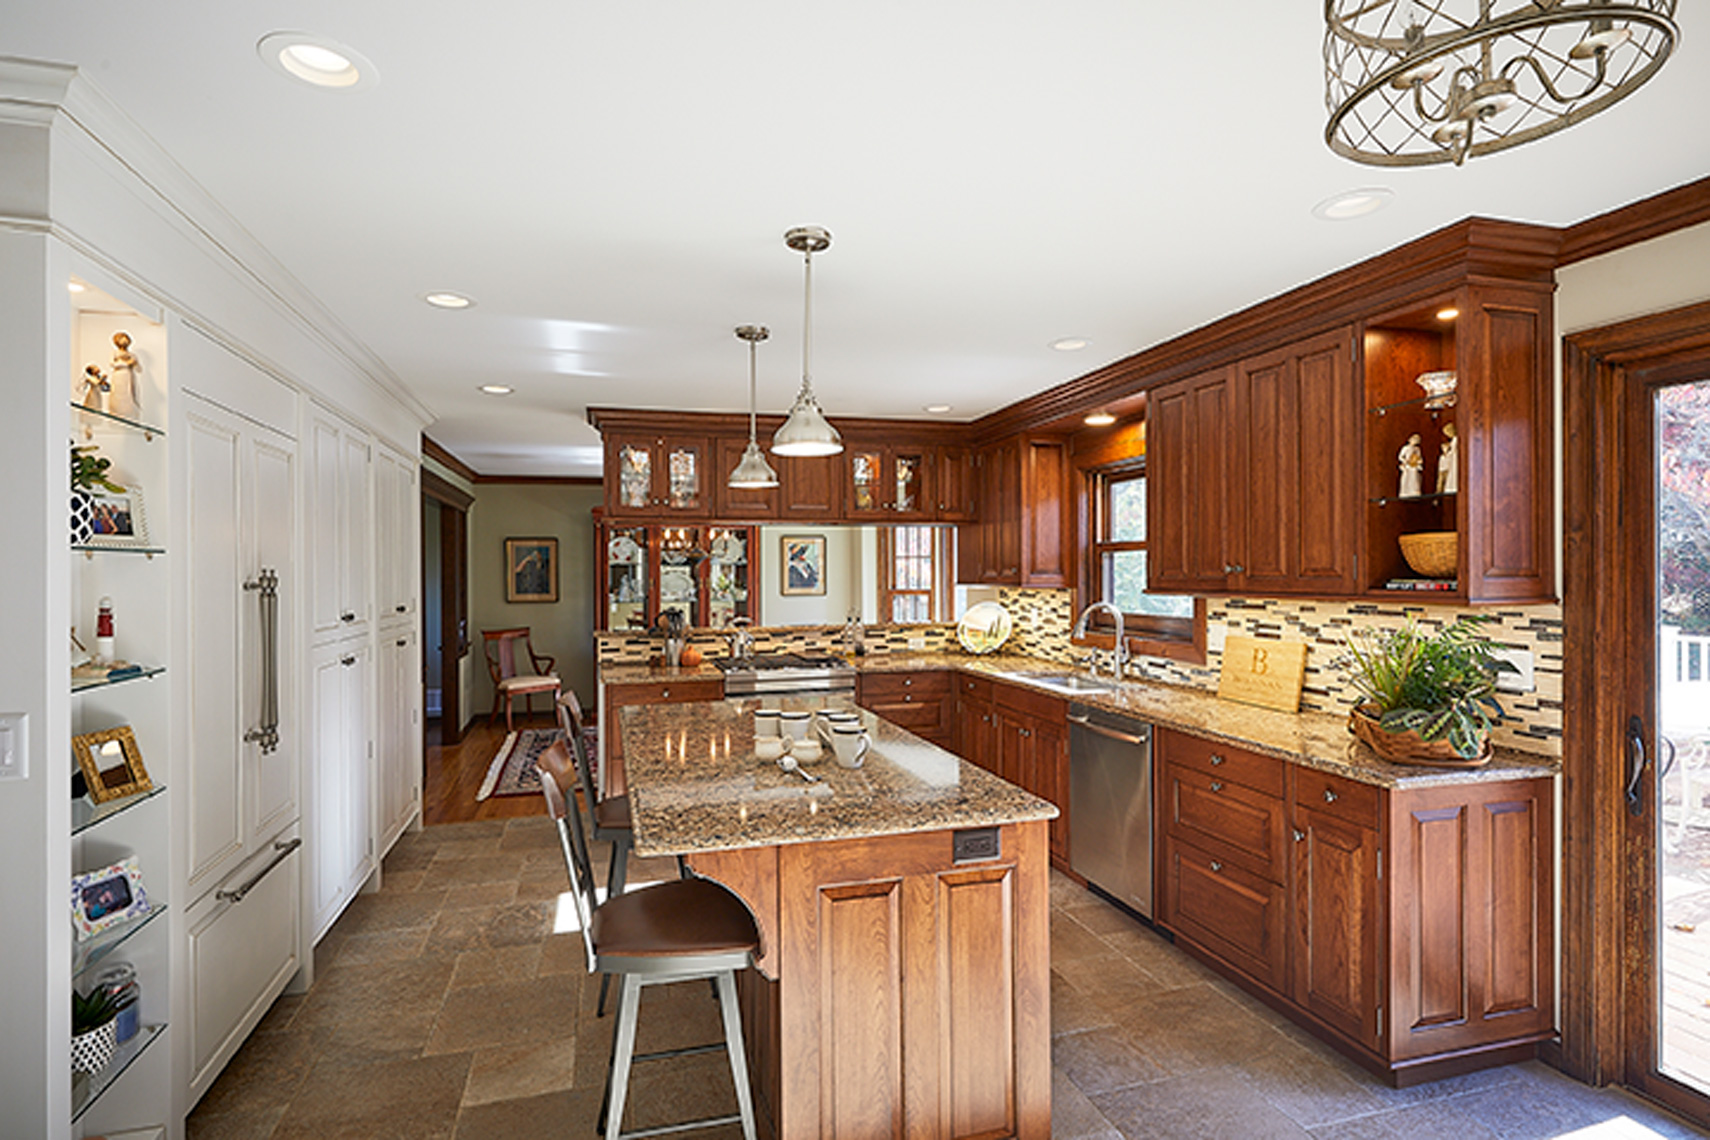 custom kitchen remodels bucks county PA - TraditionalCherryKitchen1